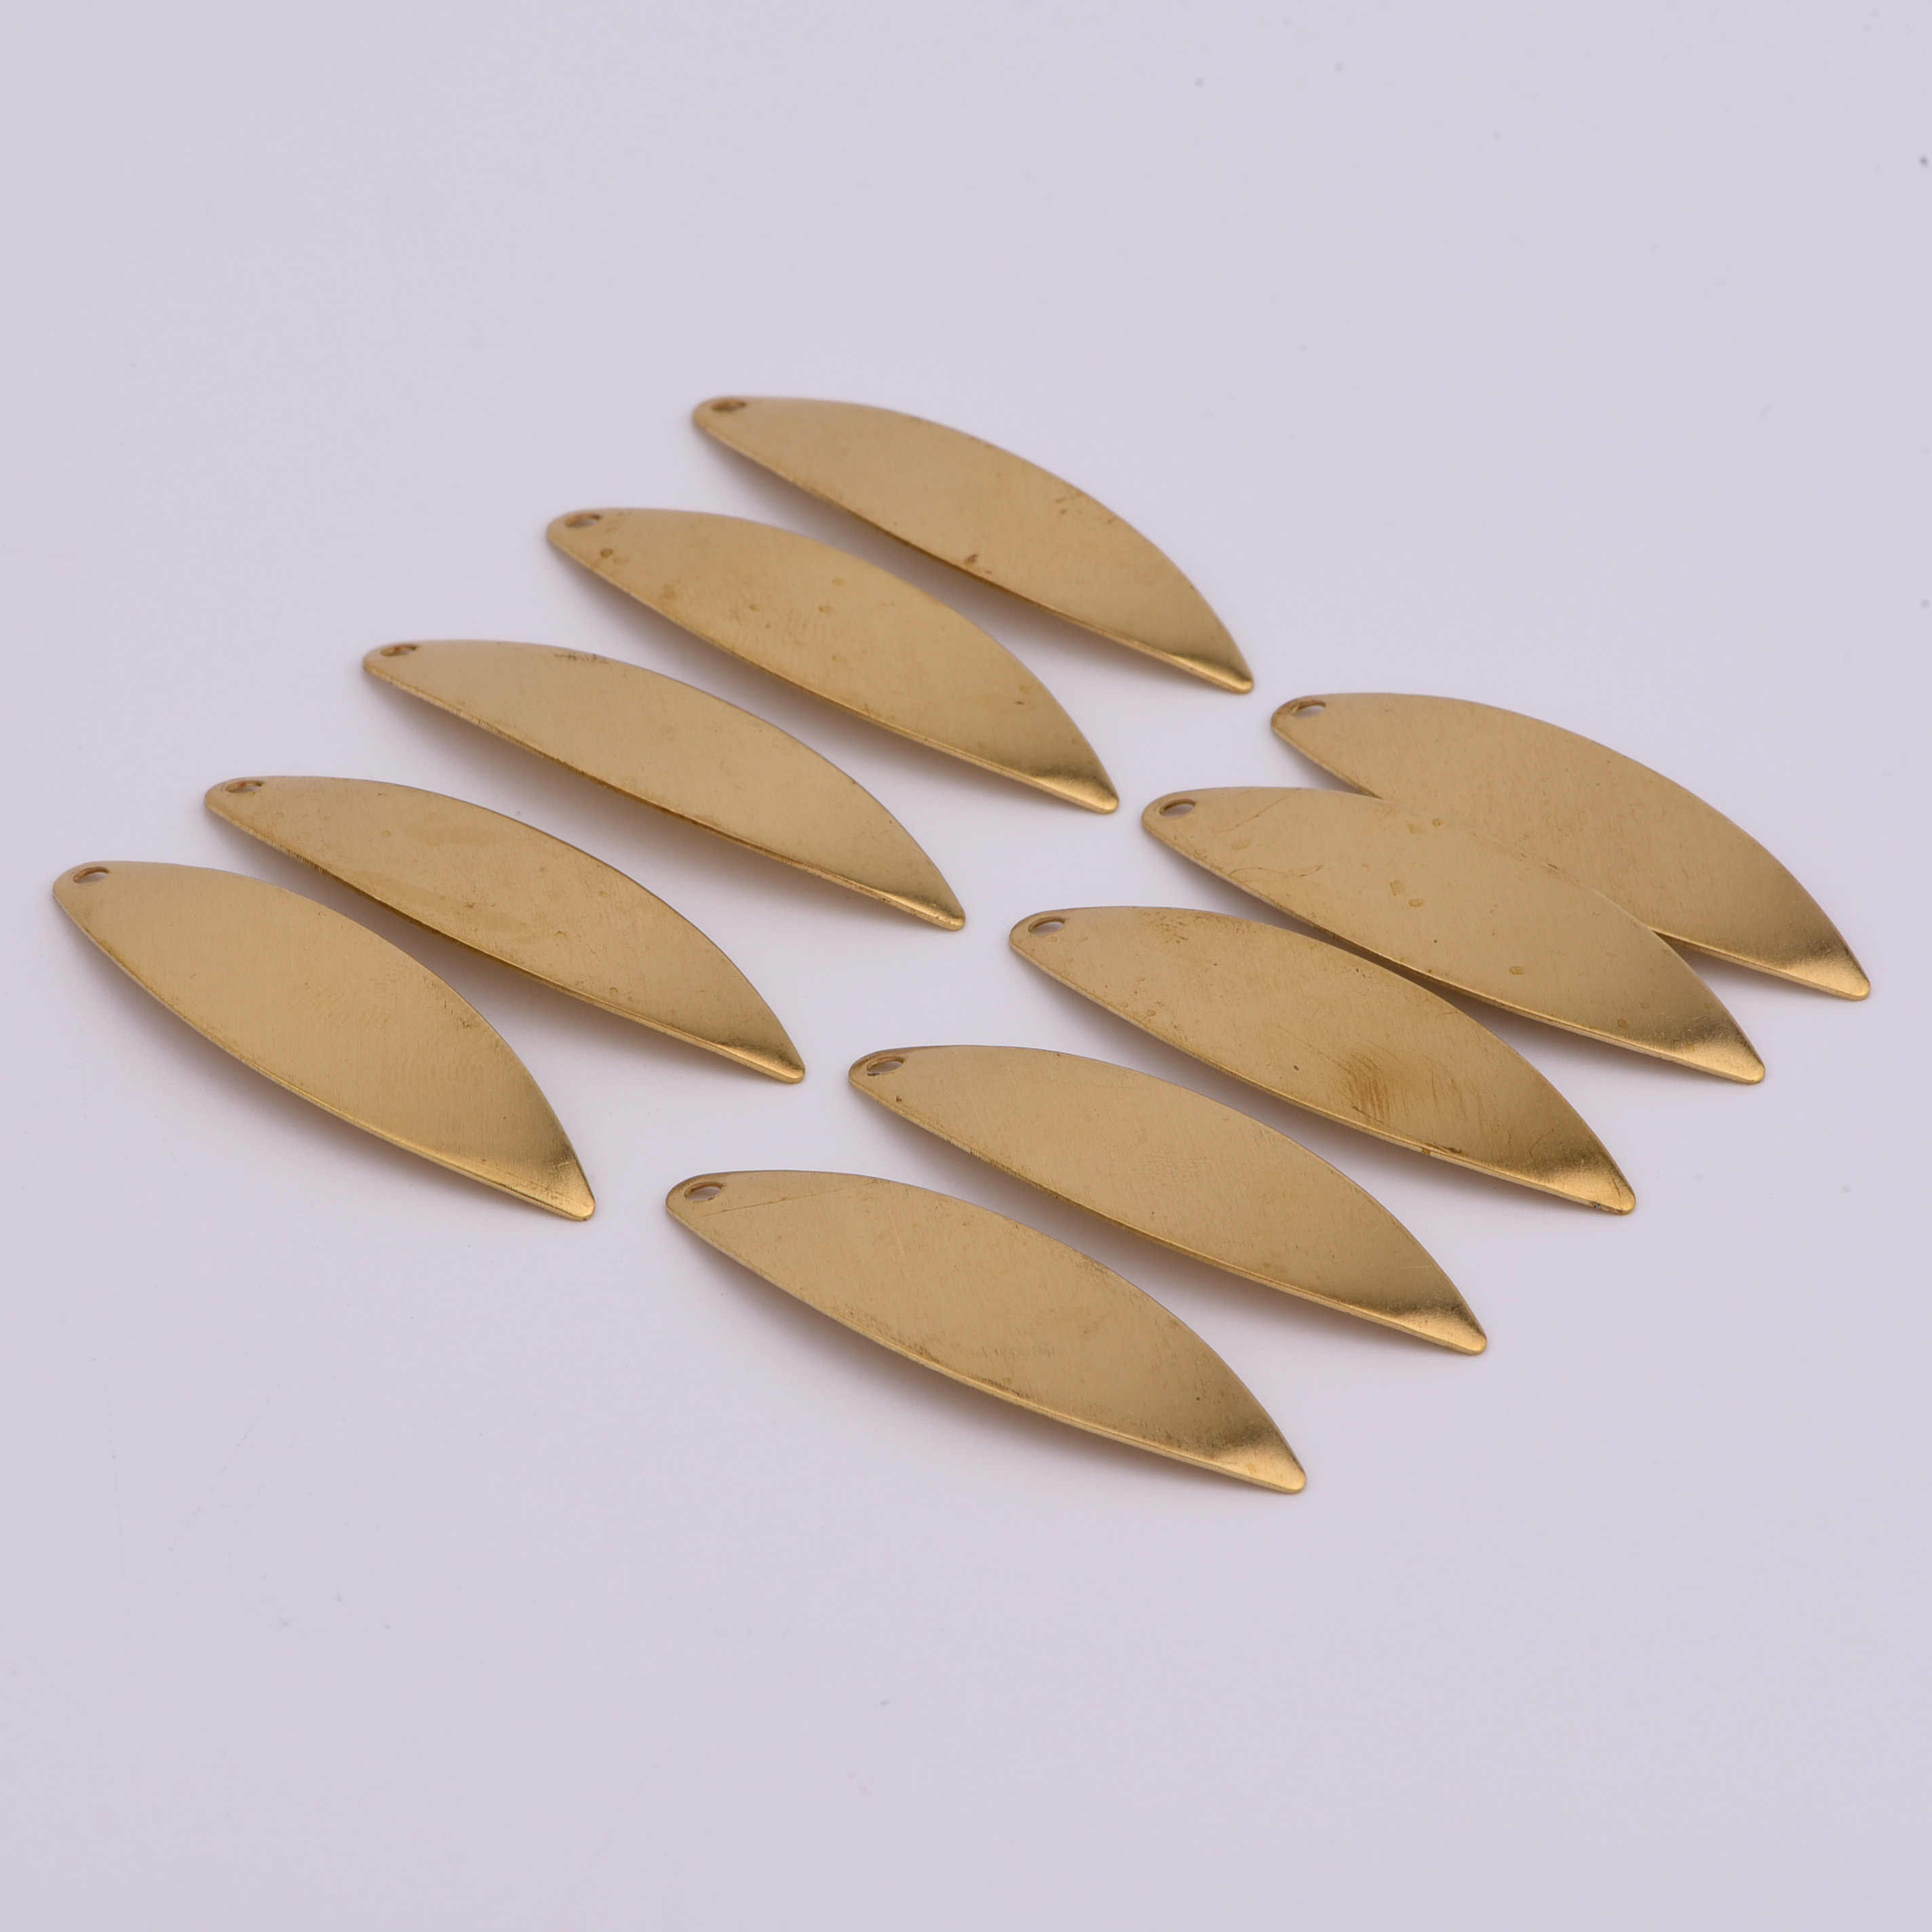 40*12mm 10pcs copper Charms Oval curved surfboard shape Pendants for DIY decoration bracelets necklace earring Jewelry Making